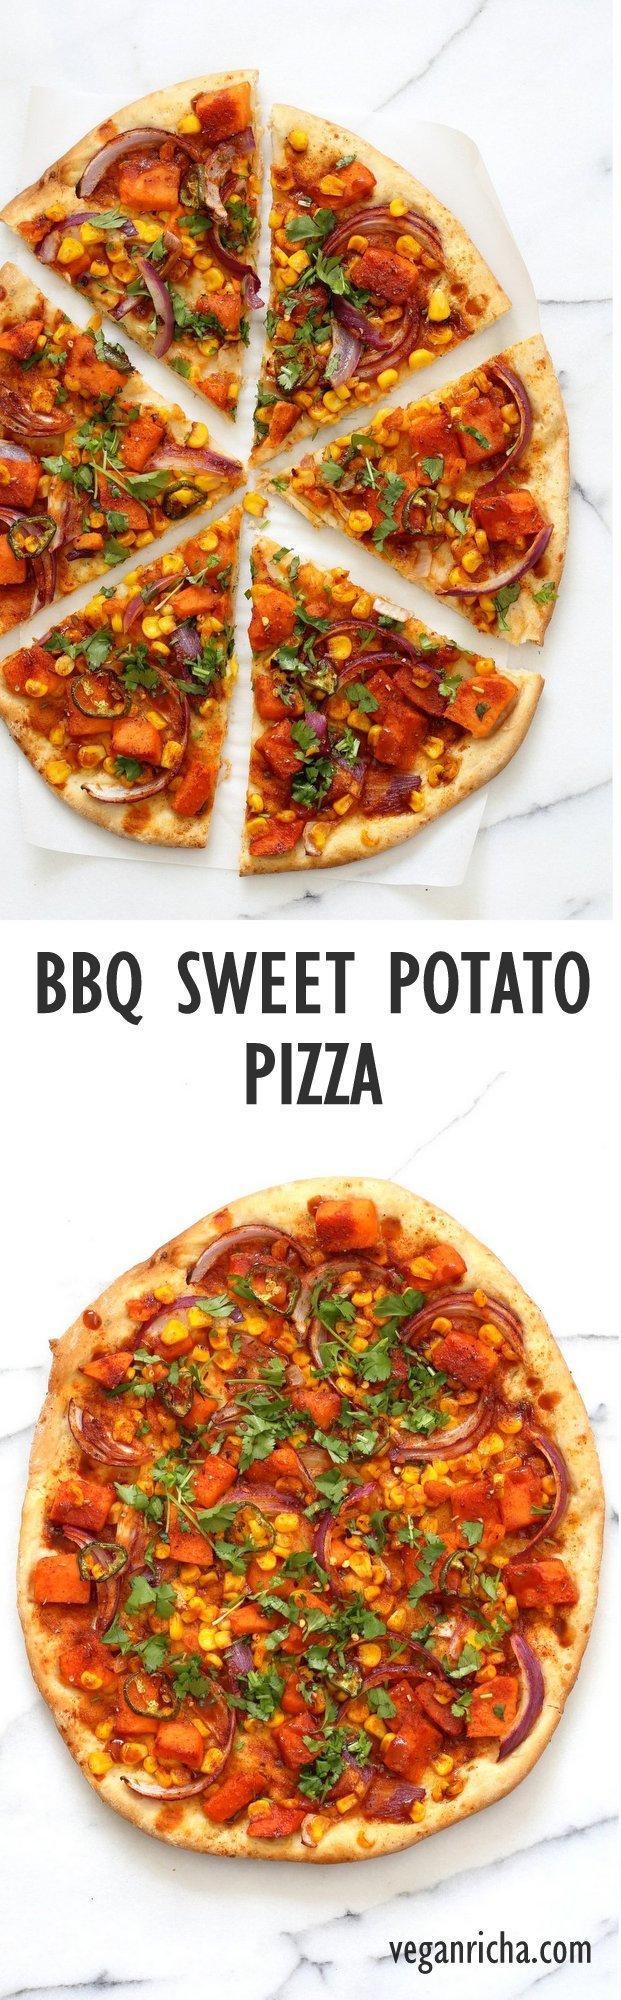 BBQ Sweet Potato Pizza. Easy Summer Pizza with Sweet Potato, Corn, Jalapeno tossed in homemade BBQ Seasoning and dressed in Barbecue sauce. Grill or bake or make into a quesadilla. Vegan Nut-free Barbecue Pizza Recipe. Soy-free Gluten-free option | VeganRicha.com